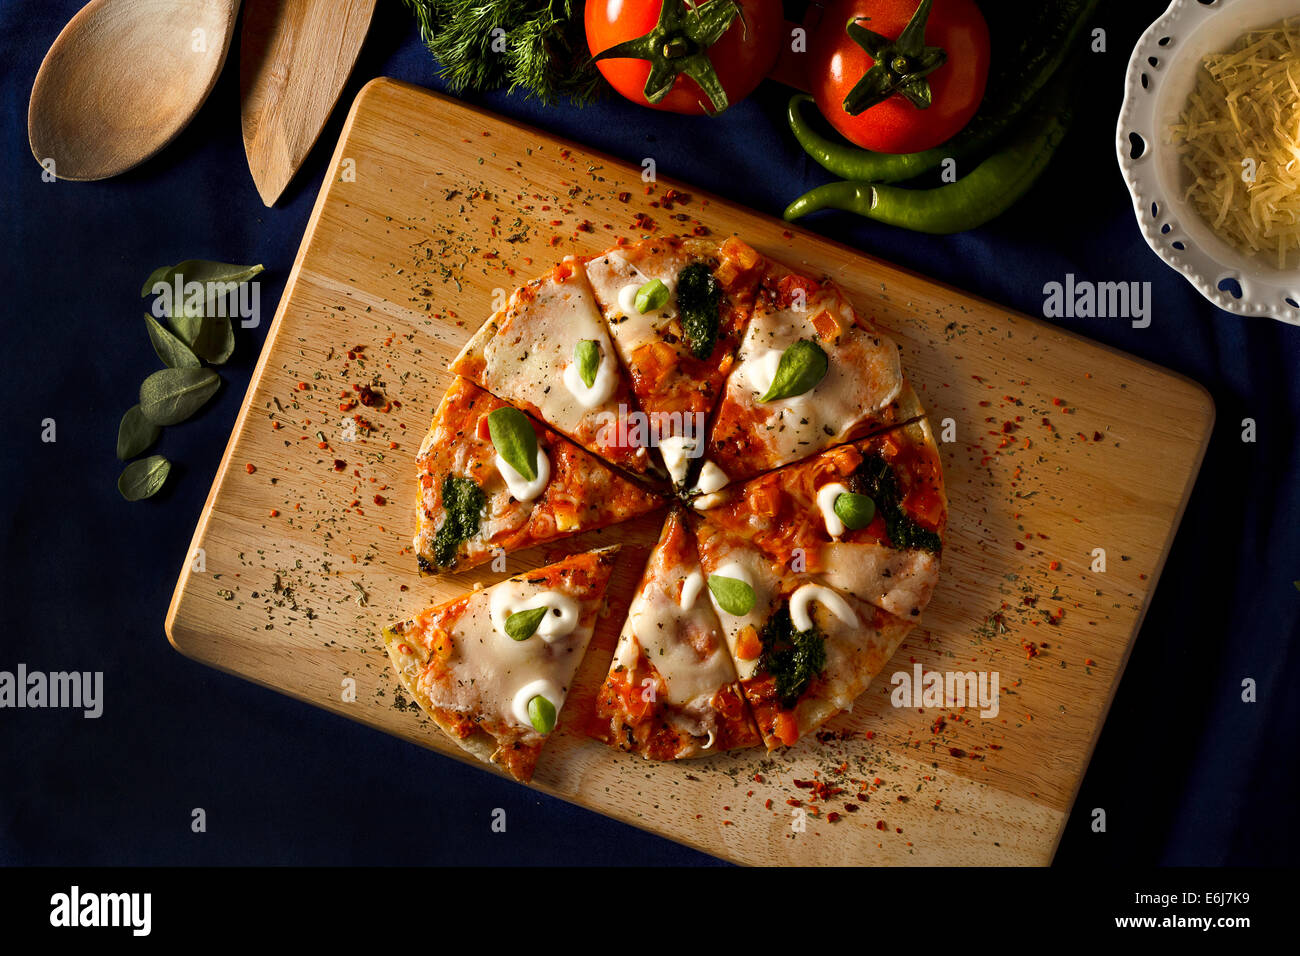 Italian pizza with mozerellla on dark and mood table setting Stock ...